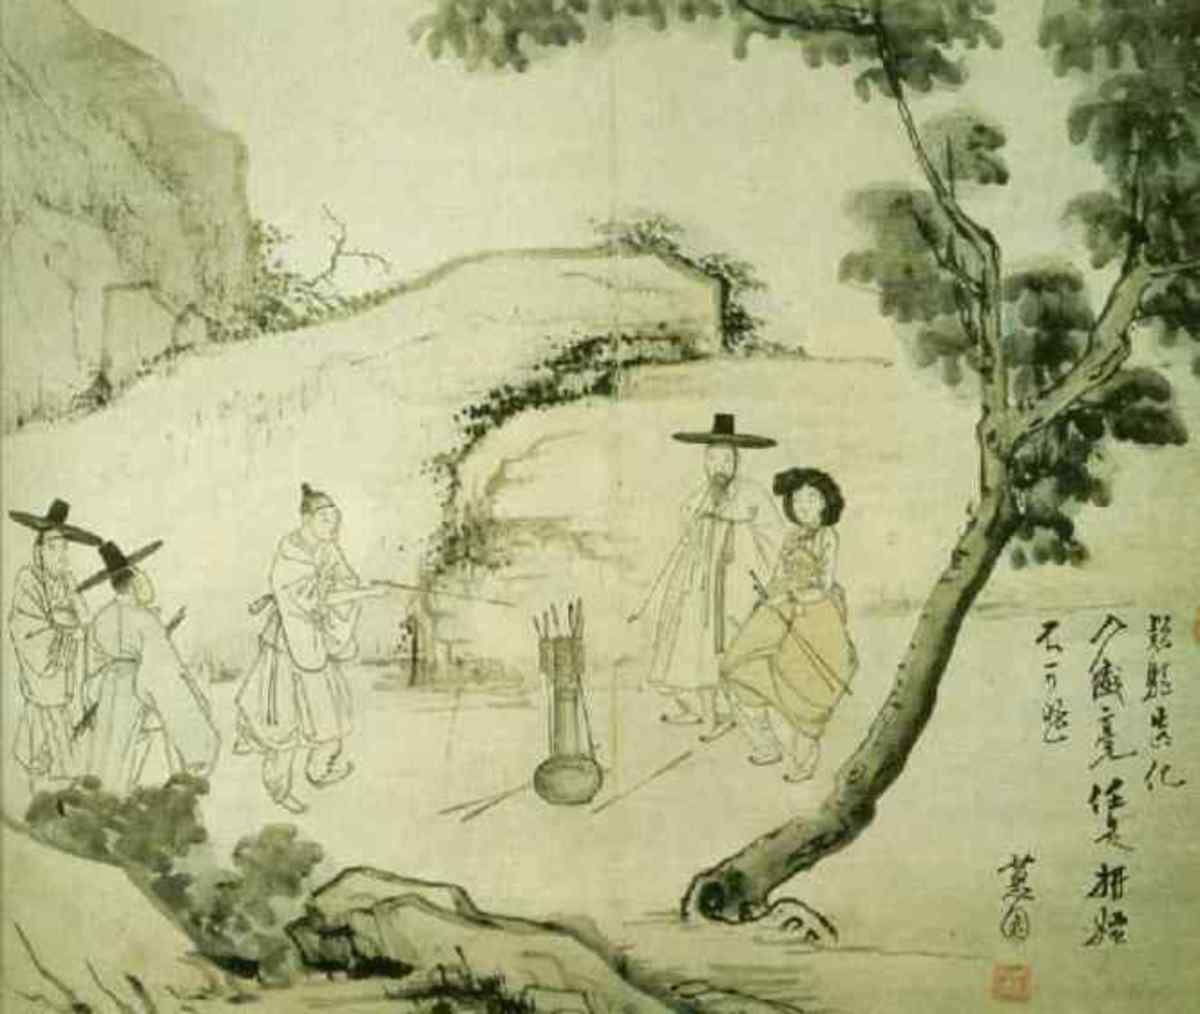 """Playing a tuho game under the forest"" from Hyewon pungsokdo by 19th-century Korean painter, Hyewon."